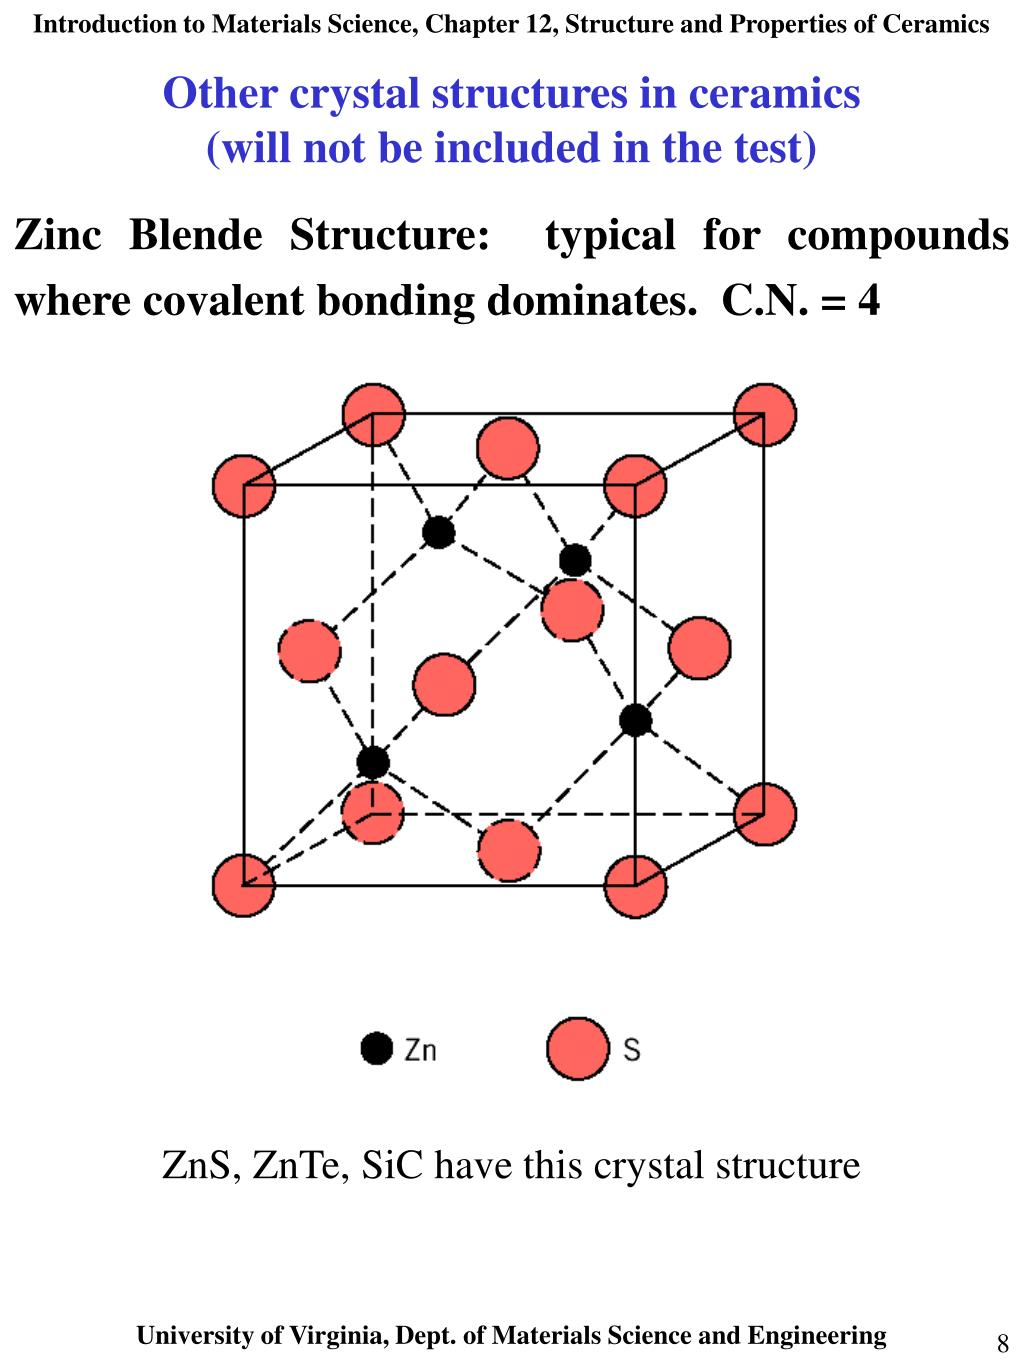 Other crystal structures in ceramics